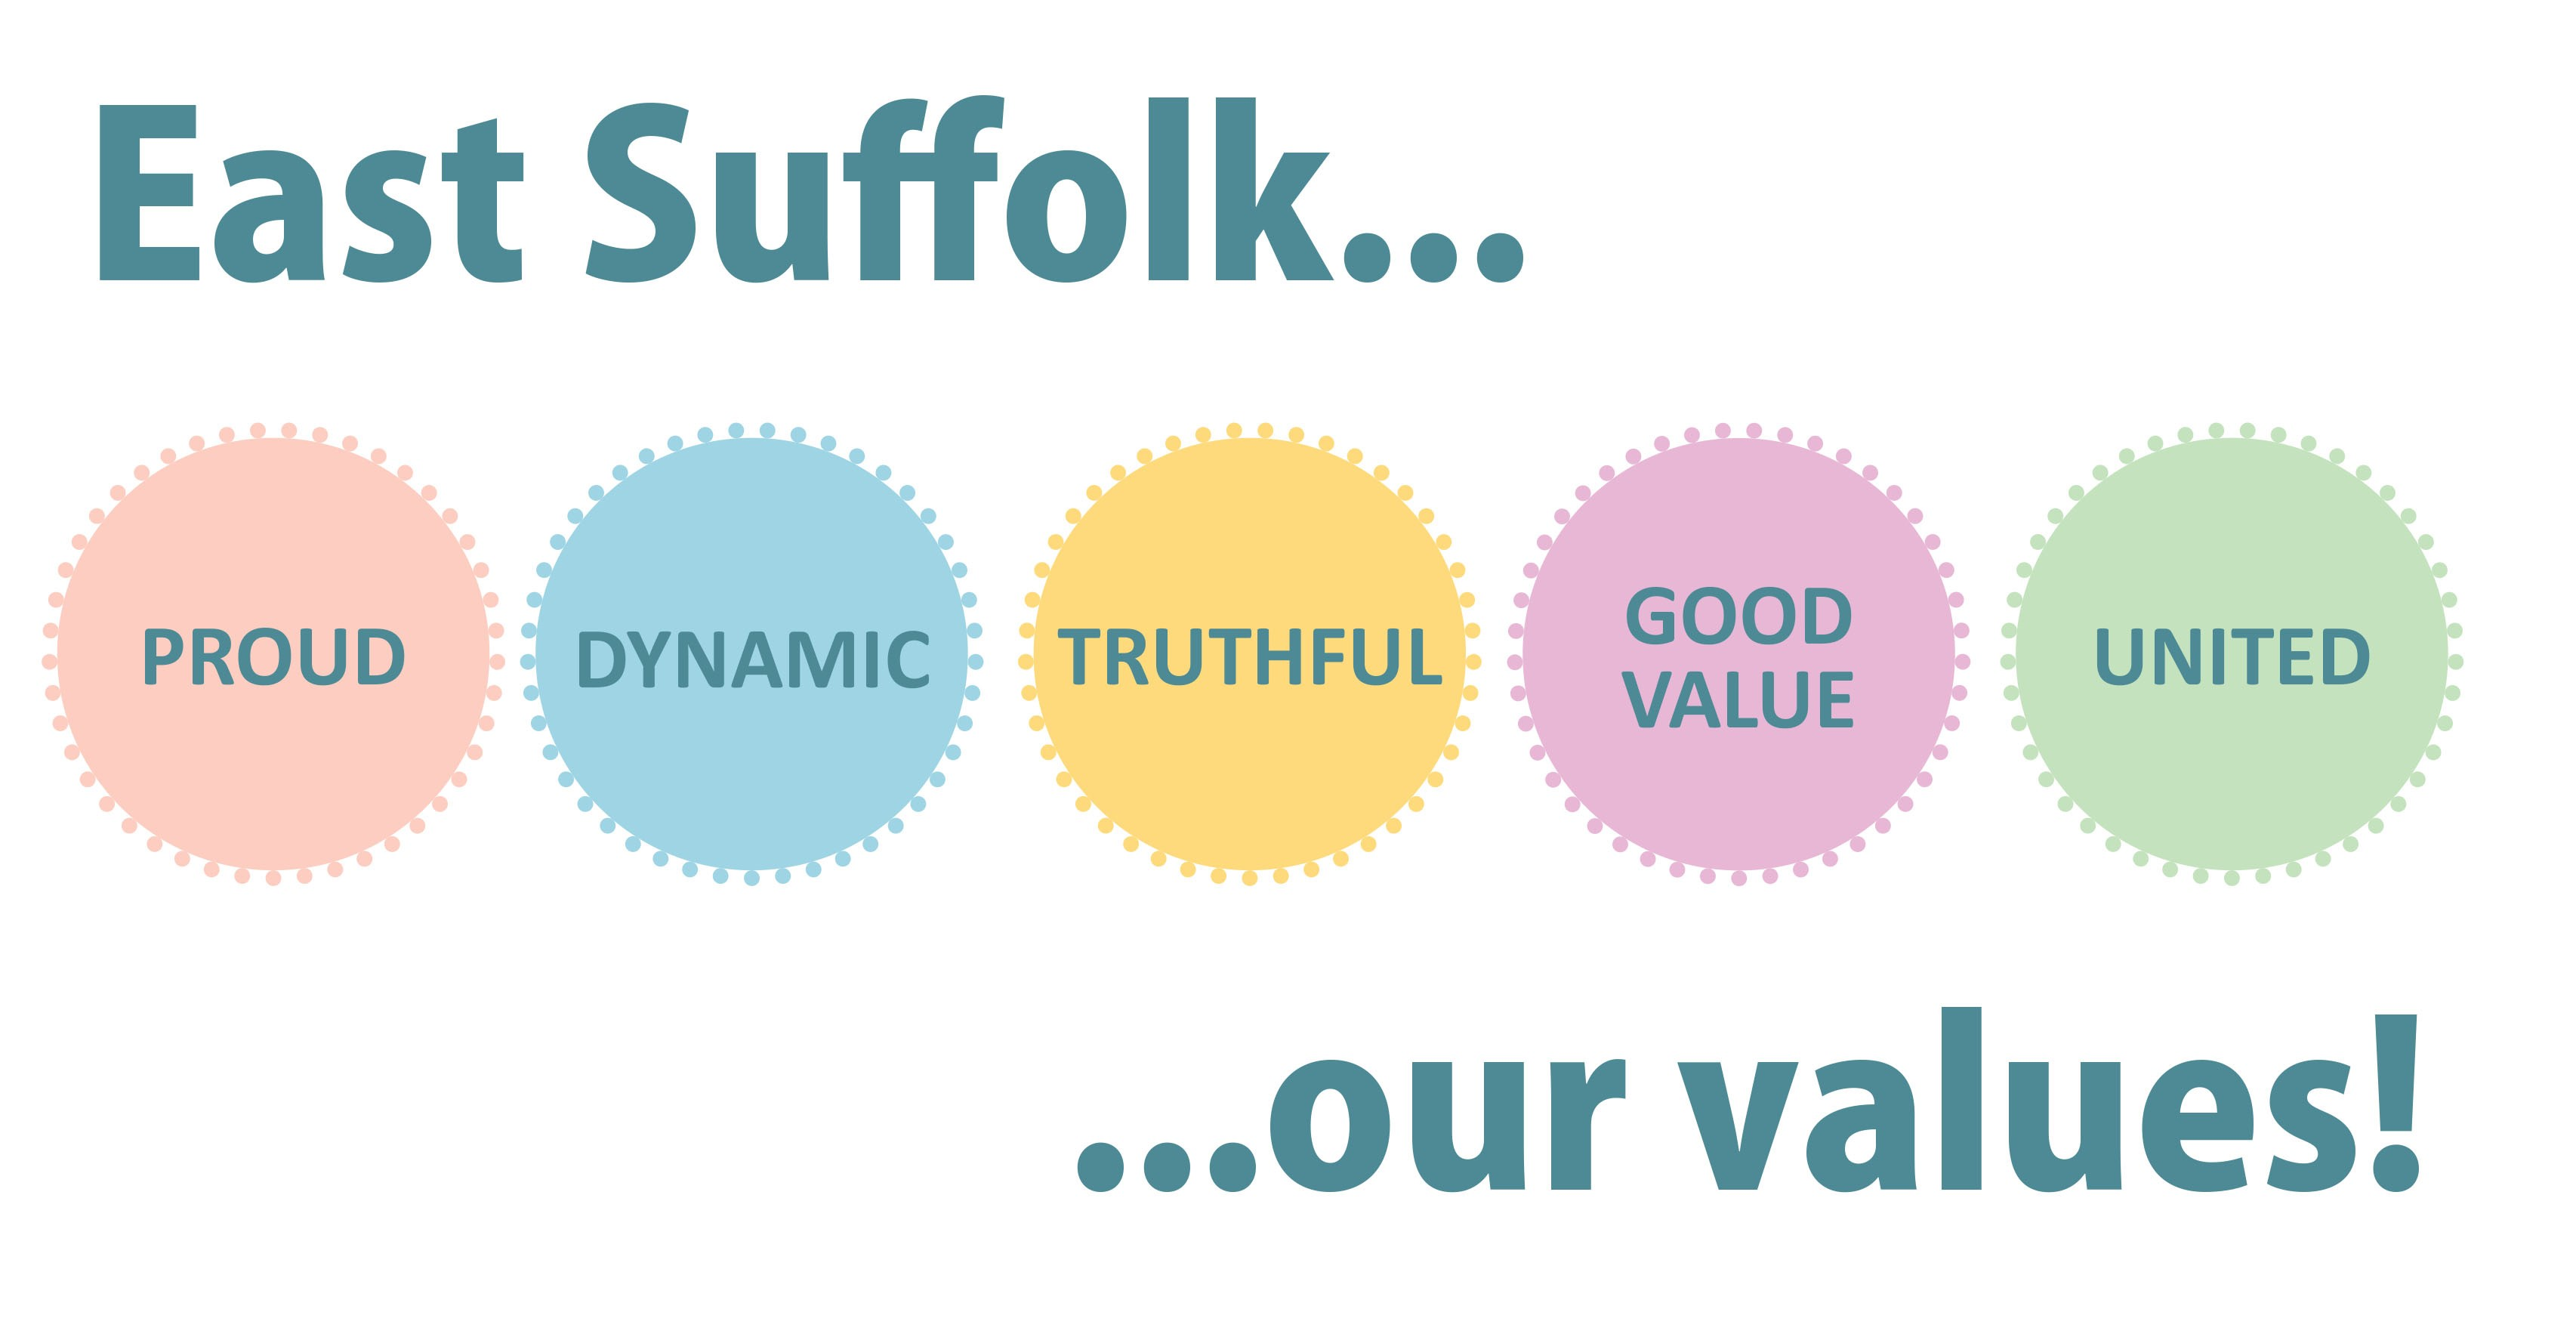 East Suffolk Council's Values of Proud, dynamic, truthful, good value, united'